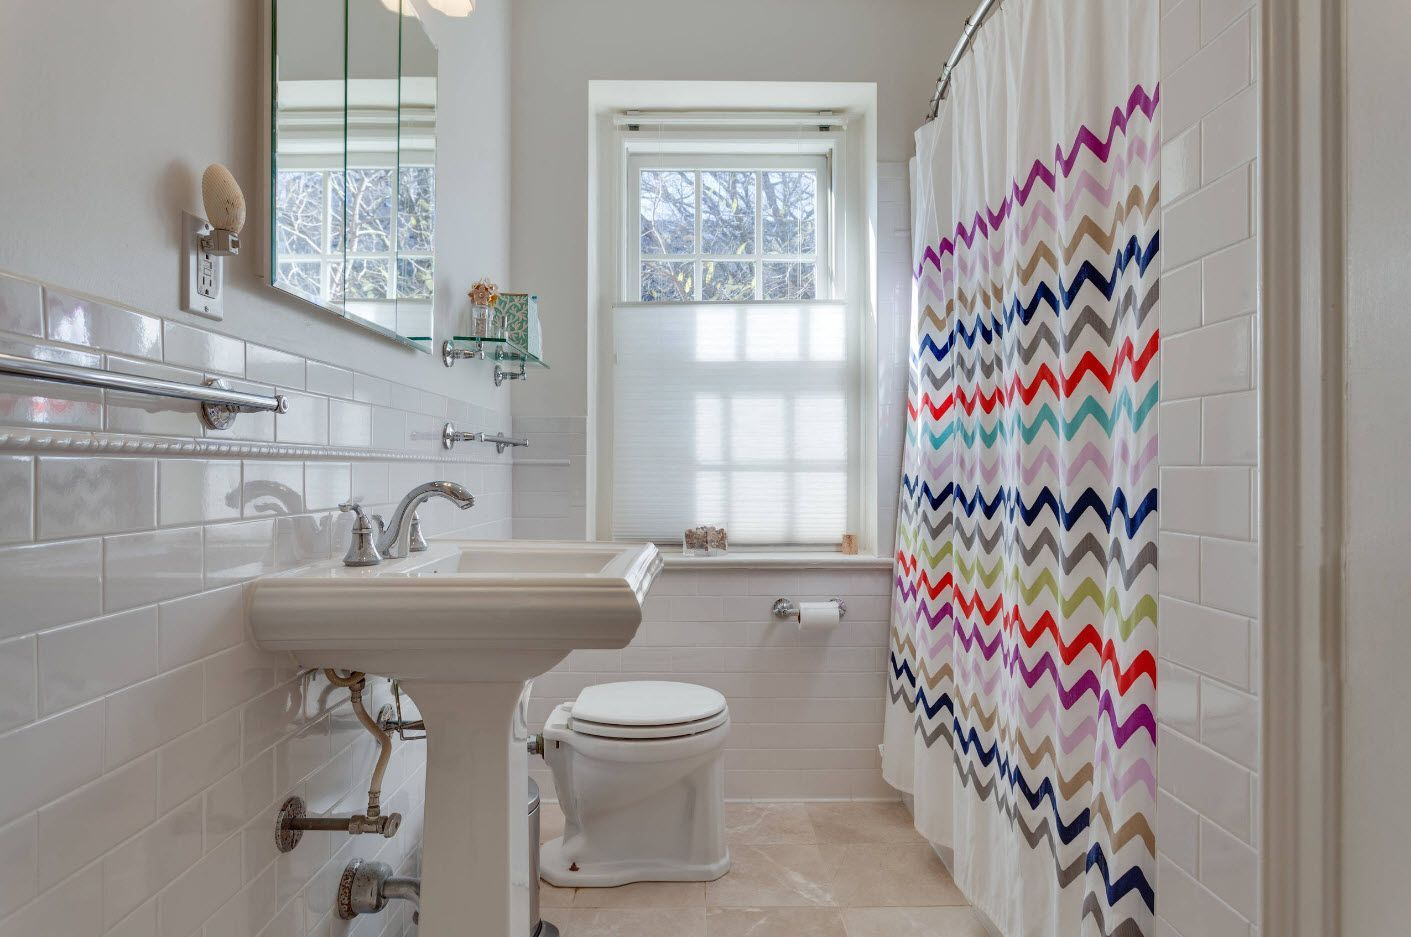 Small Bathroom Interior Space Optimization Ideas & Layout Photos 2017 rainbow at the bath curtain